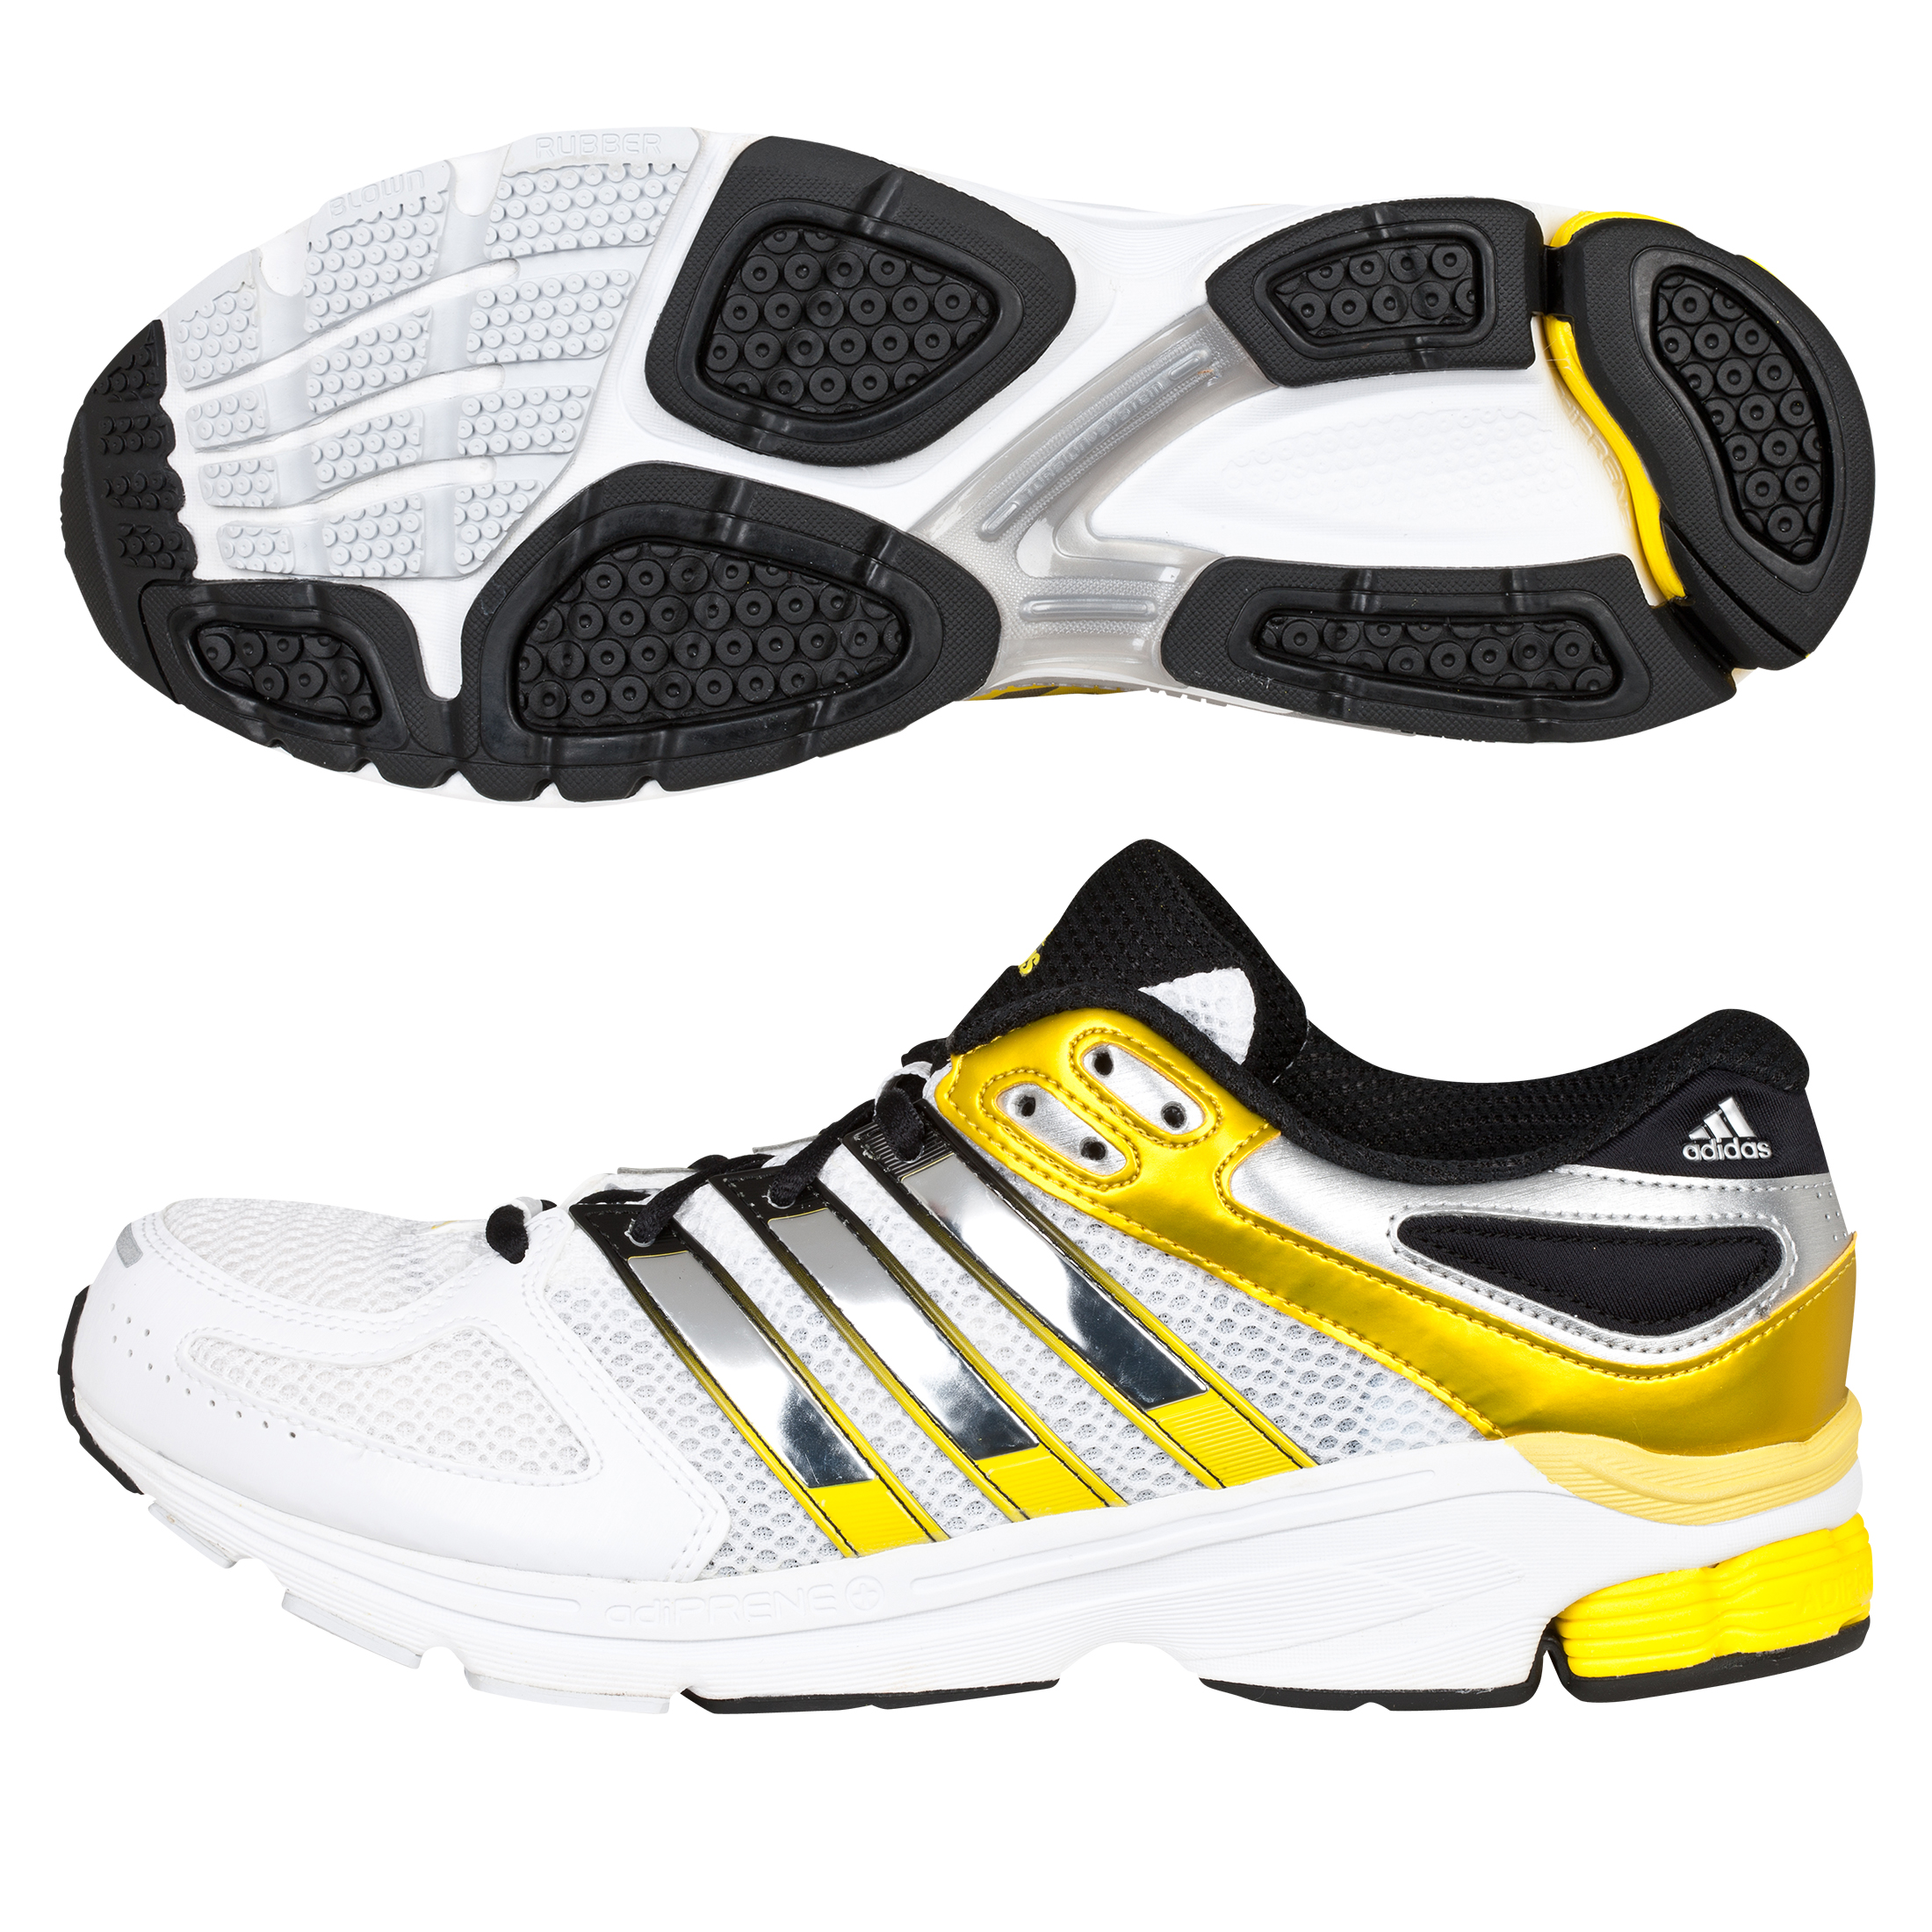 Adidas Questar Stability Trainers - White/Metallic Silver/Vivid Yellow